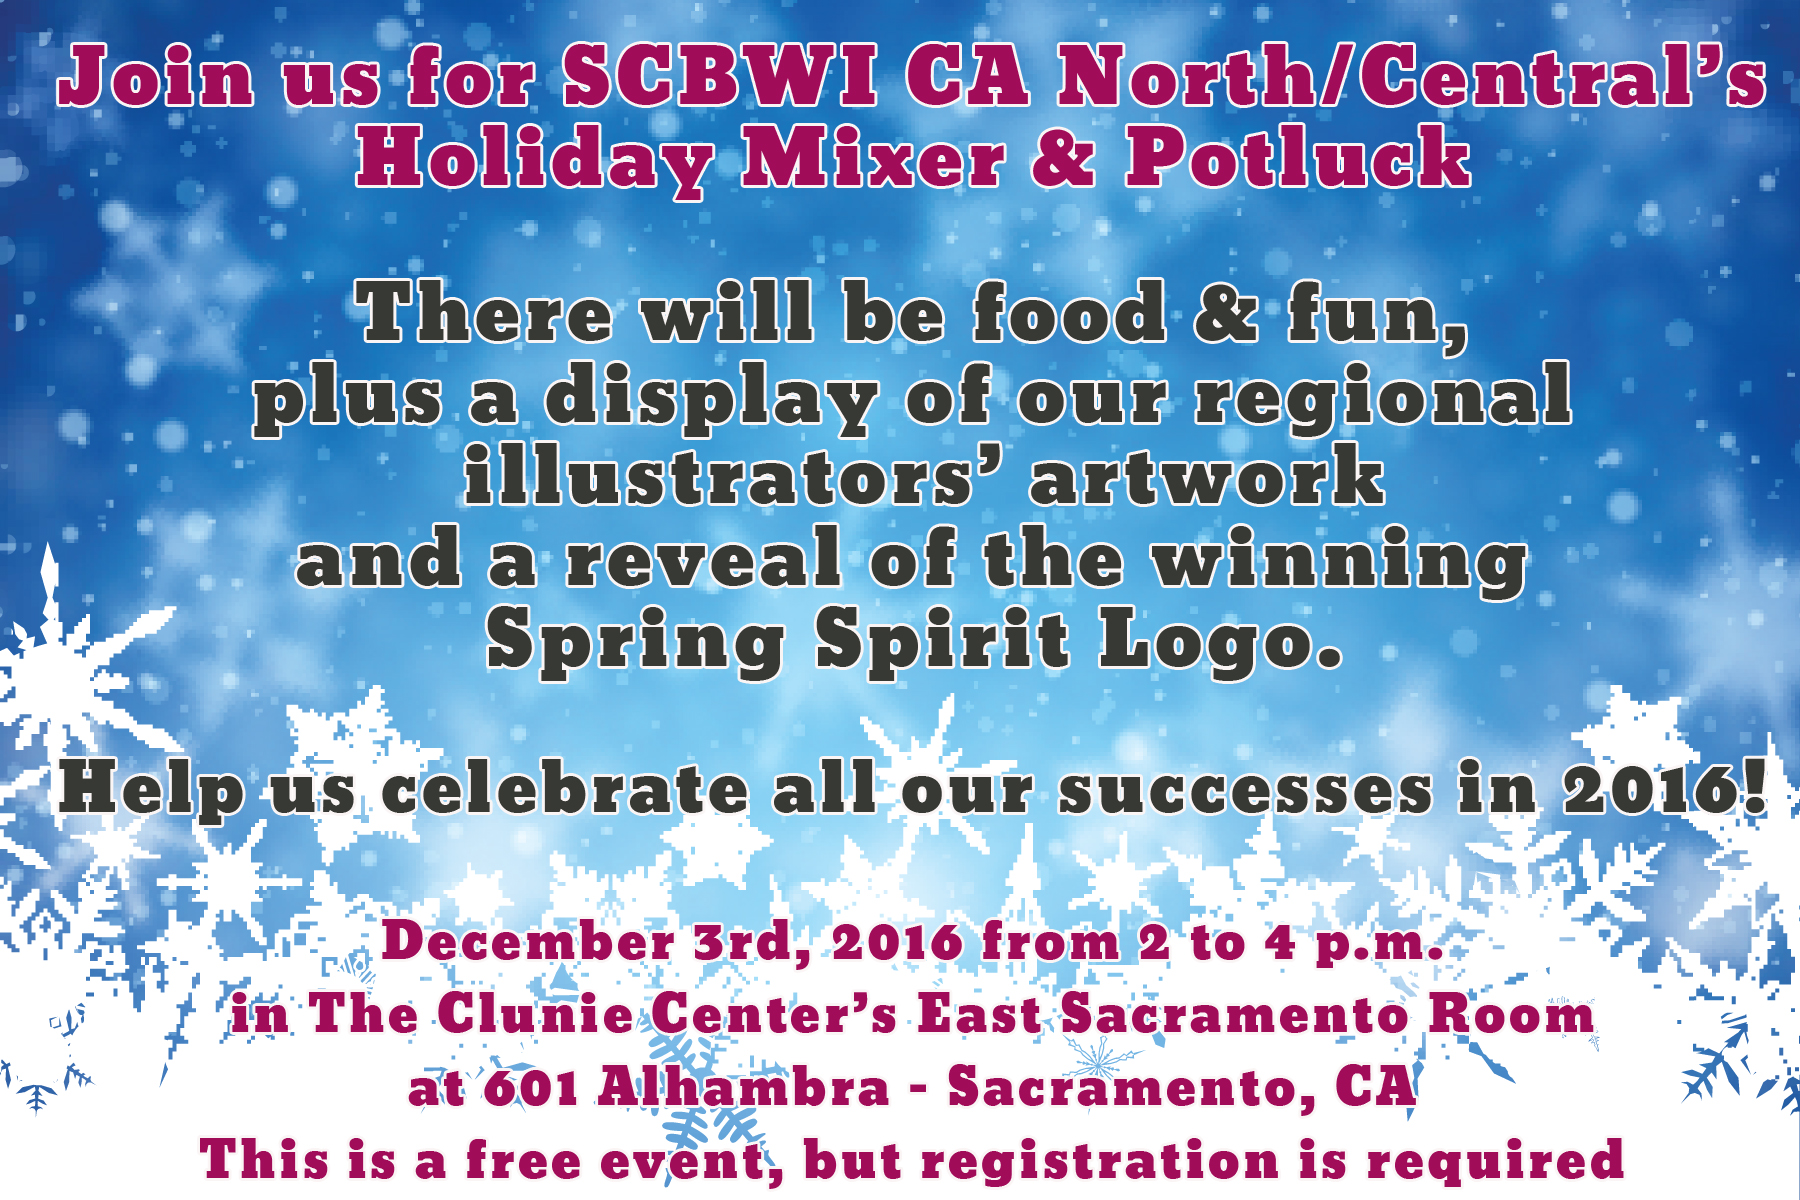 Help us celebrate all our successes in 2016! Bring your favorite potluck fare* and plan to mix and mingle with our regional members